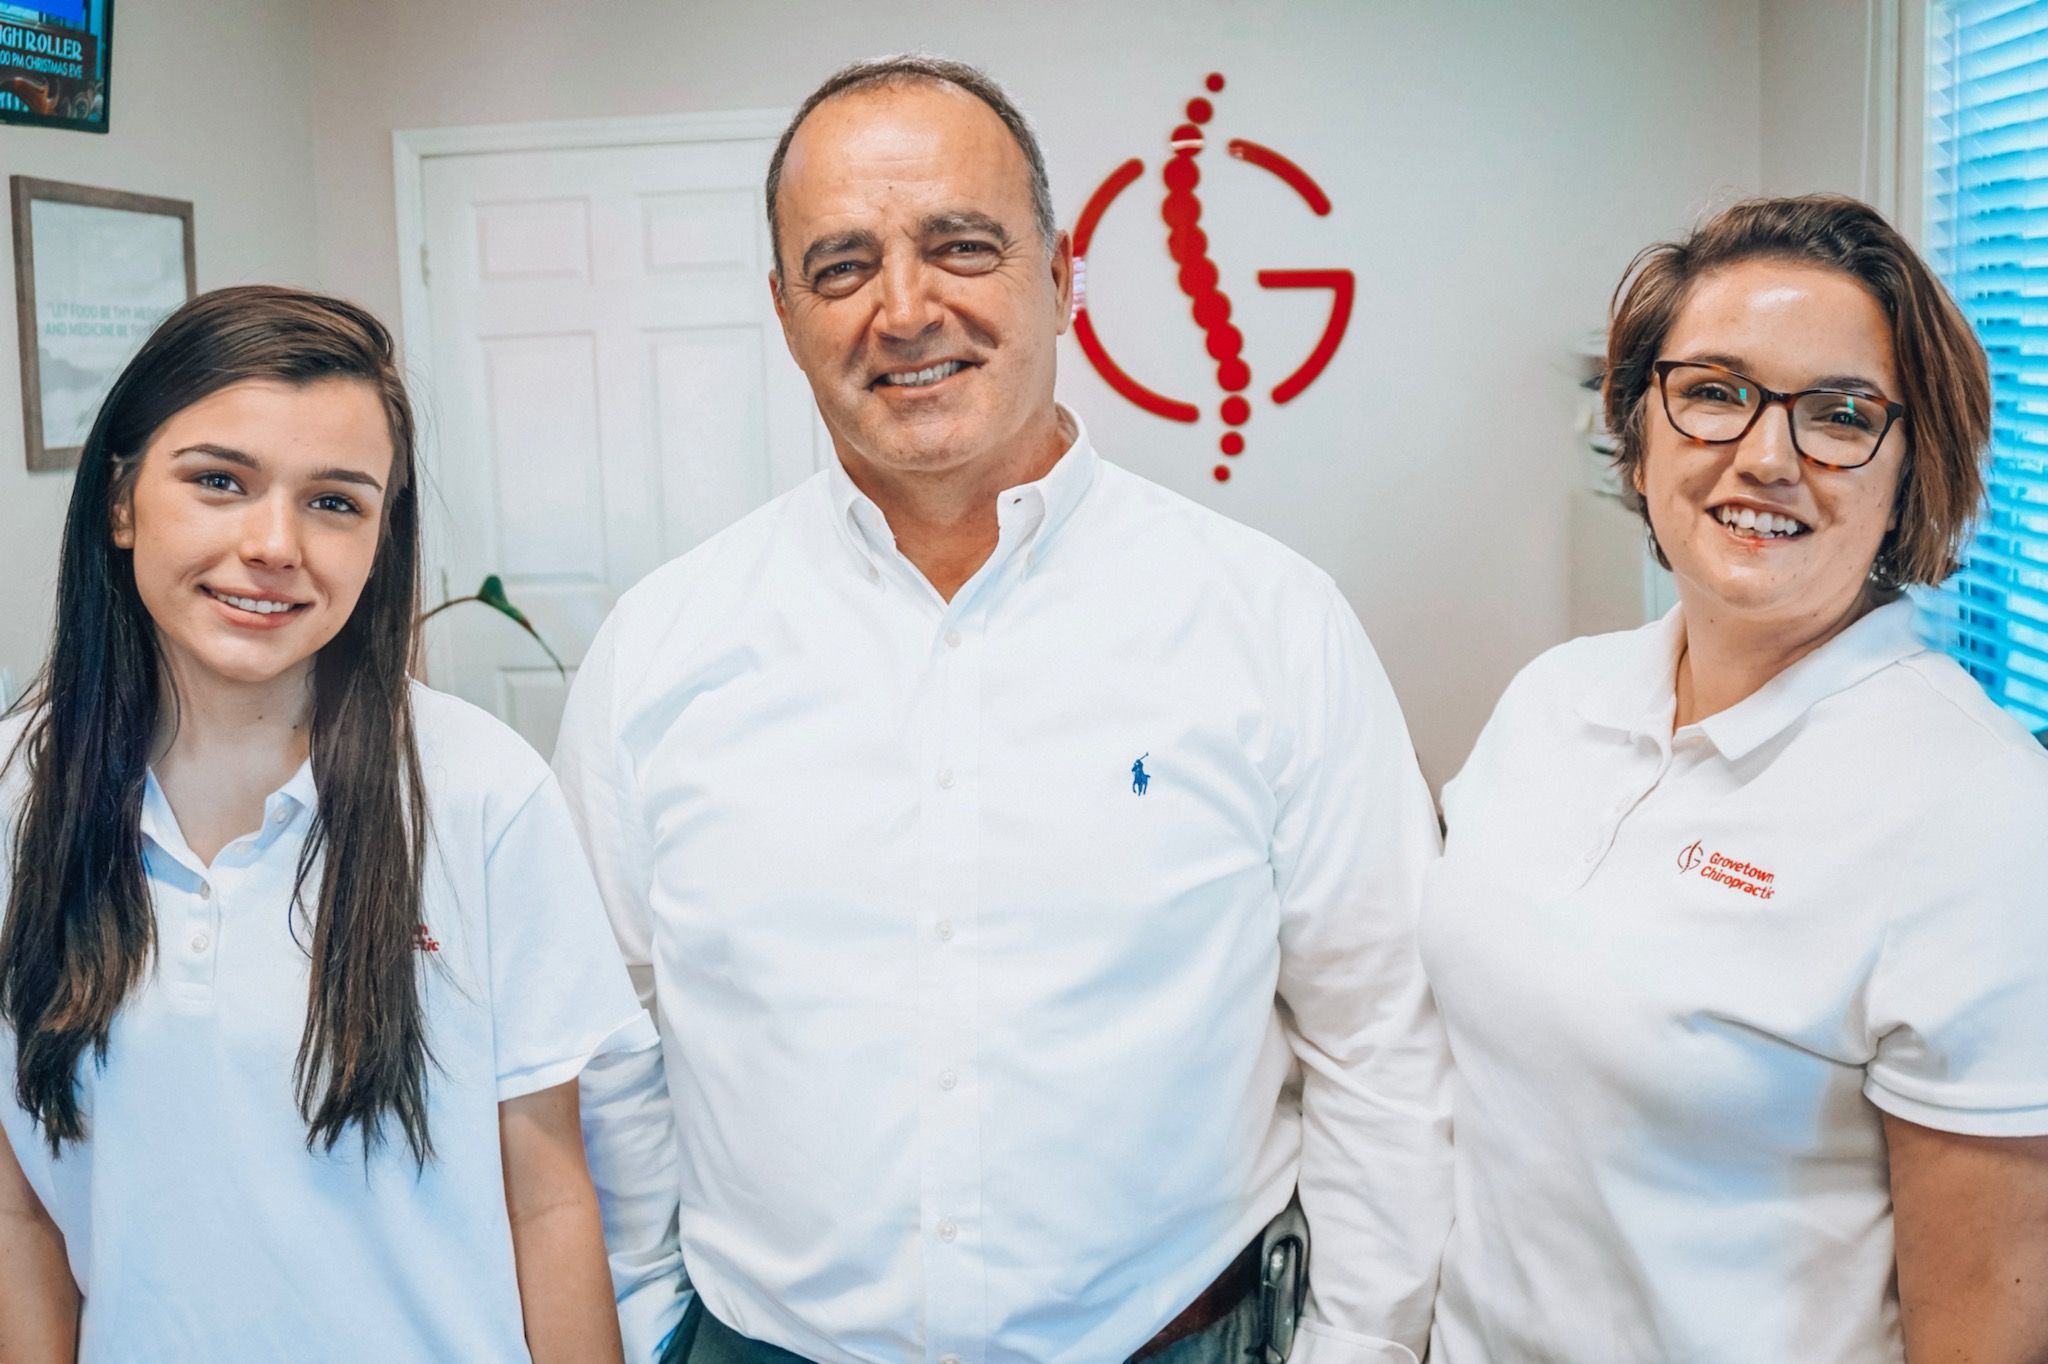 Photo of Staff at Grovetown Chiropractic - Located in Grovetown, Georgia